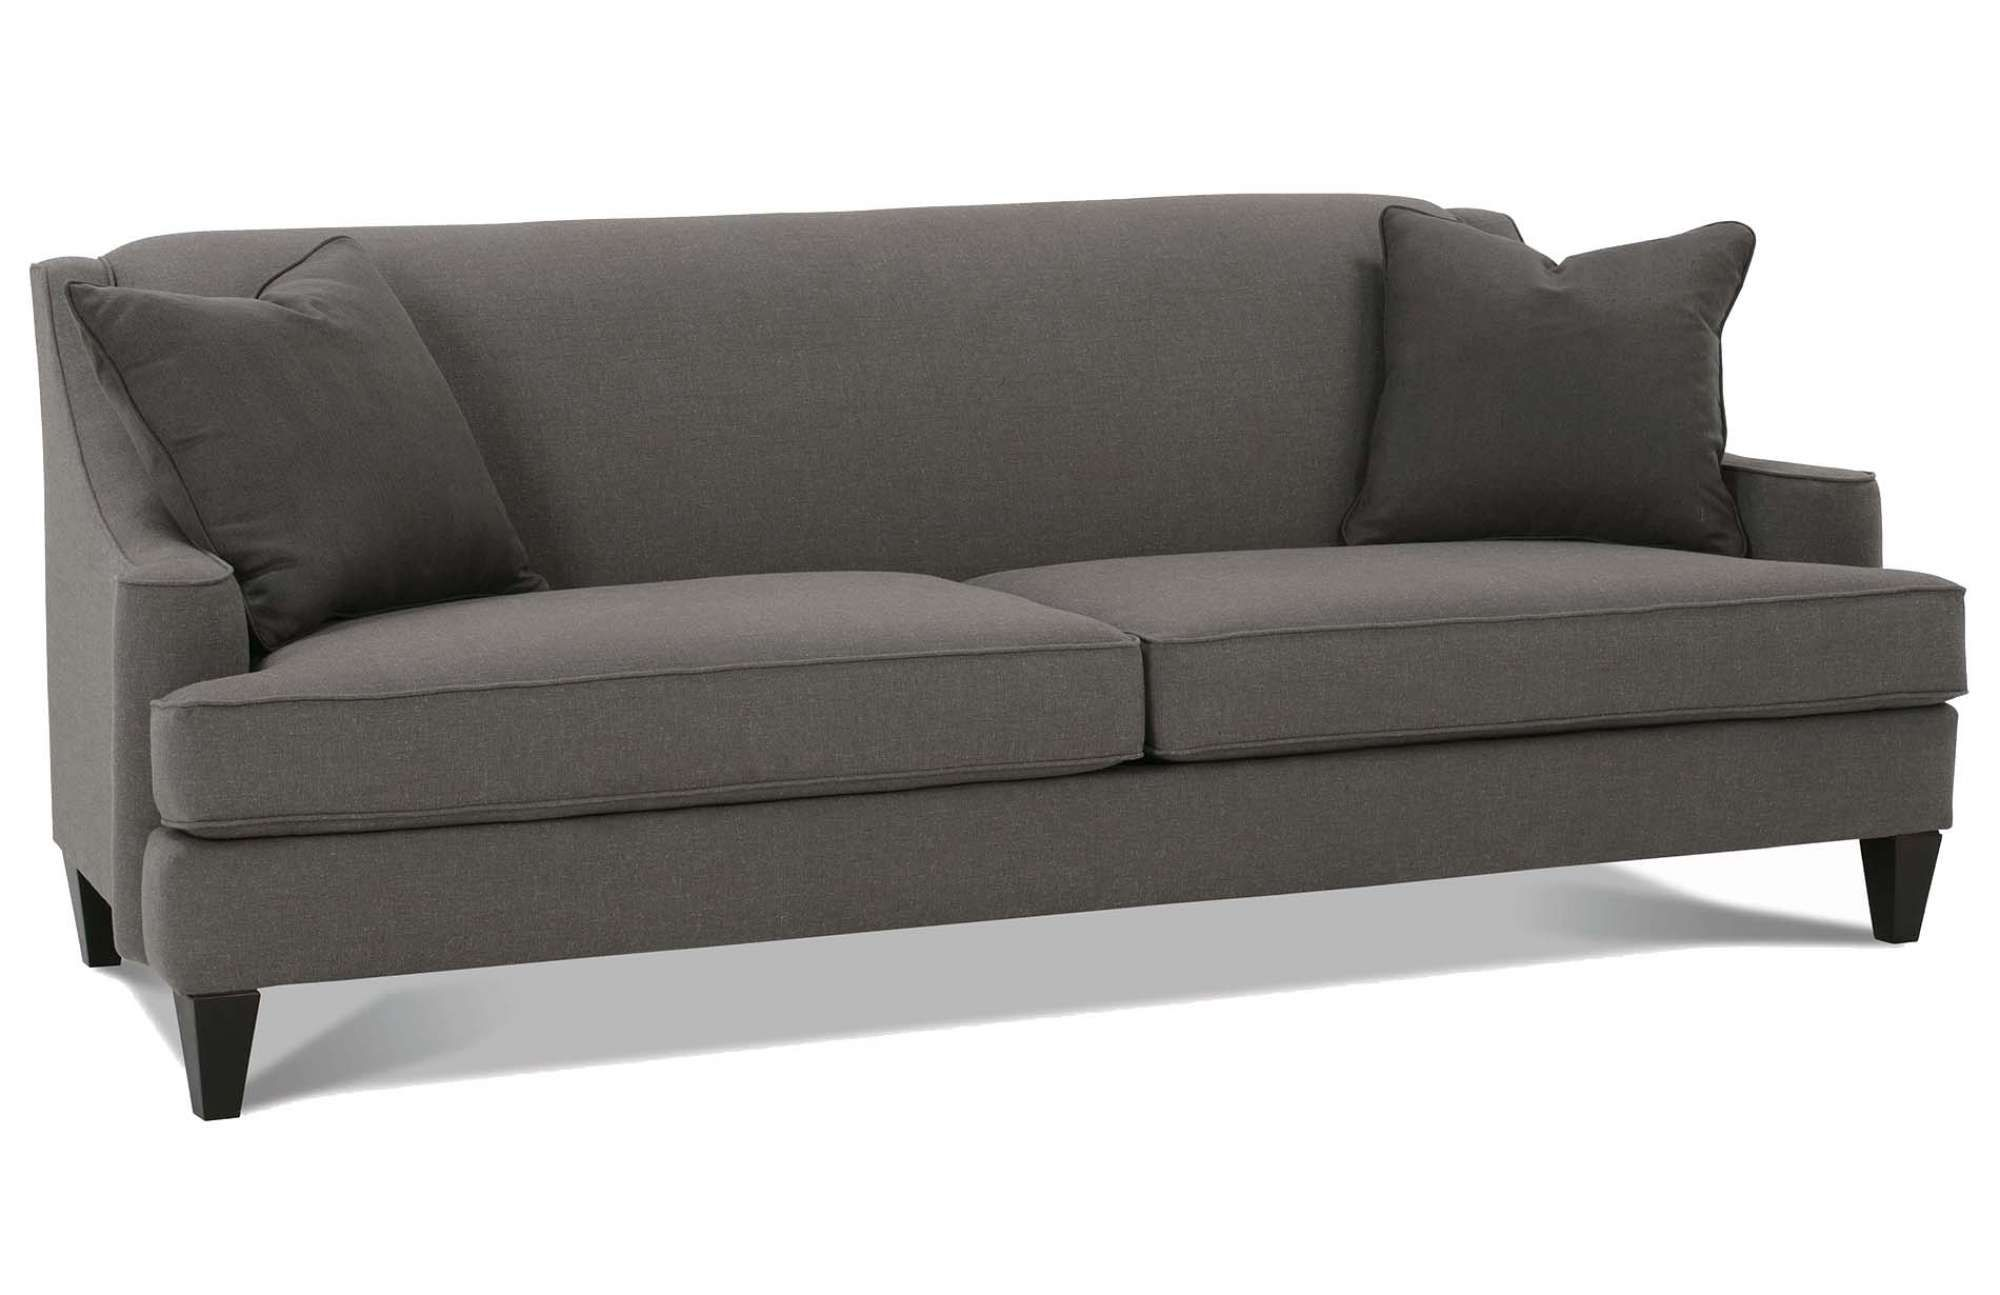 The Dugal Sofa Is A Sleek And Sophisticated Modern Design From Rowe Furniture Perfect Addition To Any Contemporary Room Theme